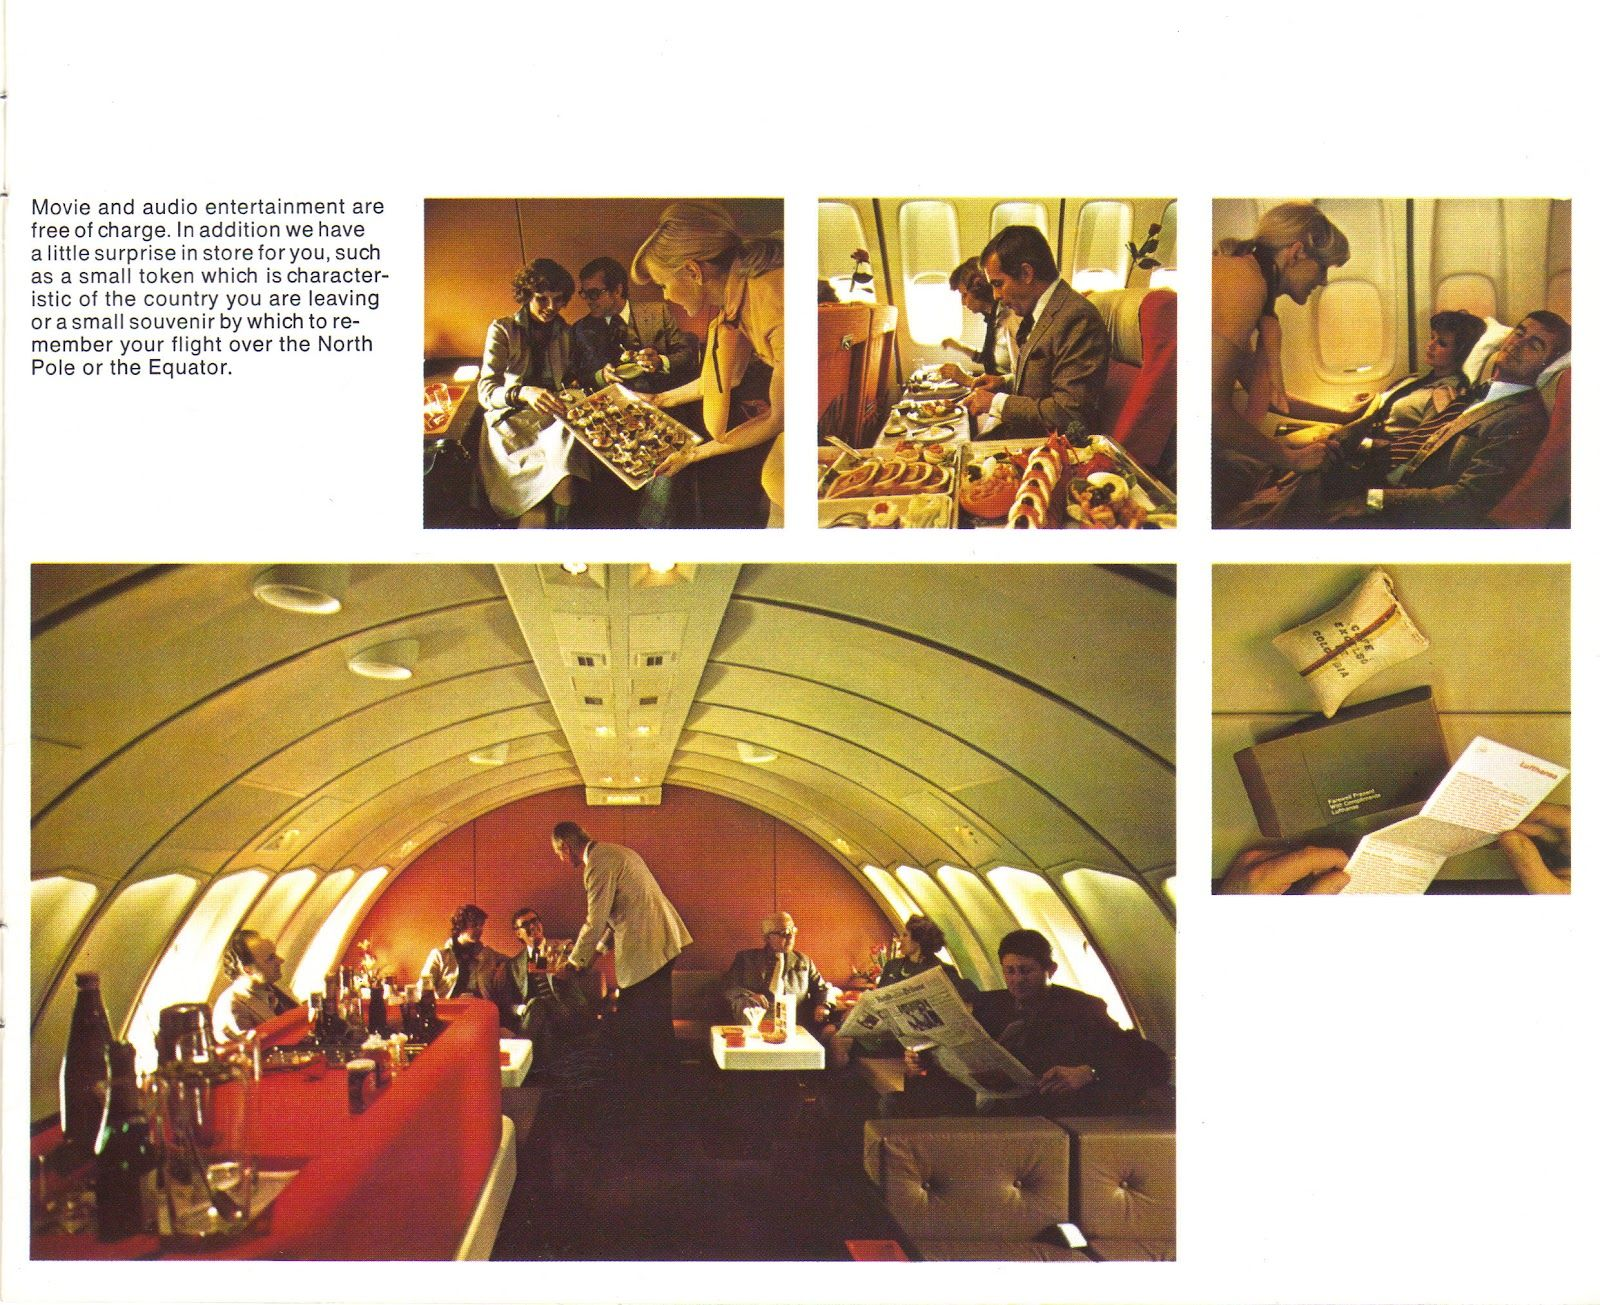 Lufthansa Boeing 747 Upper Deck First Class Senator Lounge